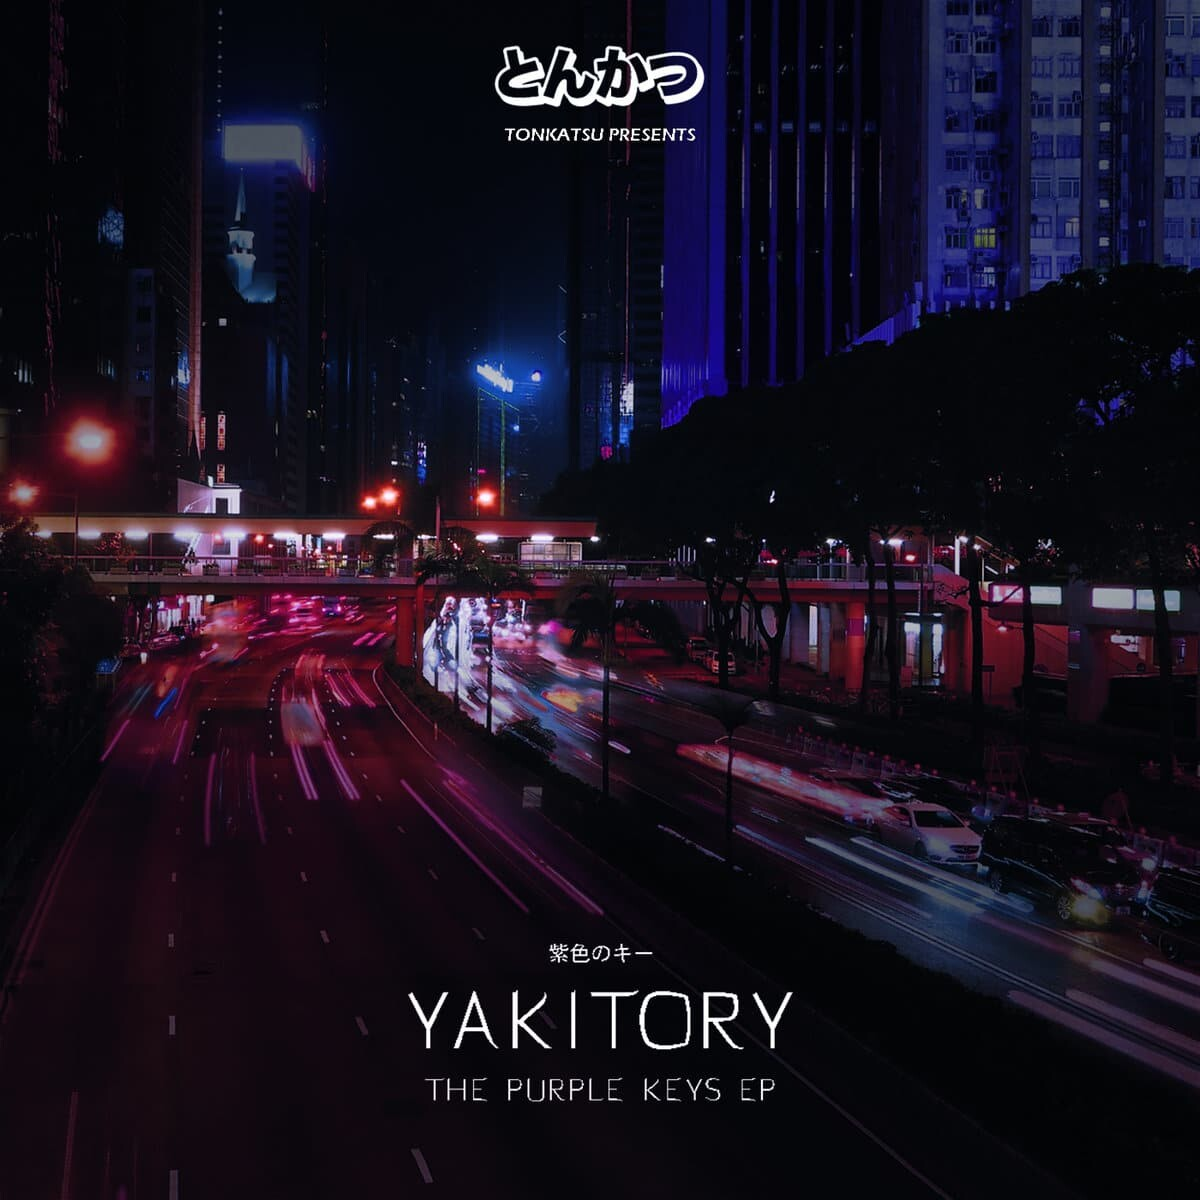 YAKITORY - The Purple Keys EP